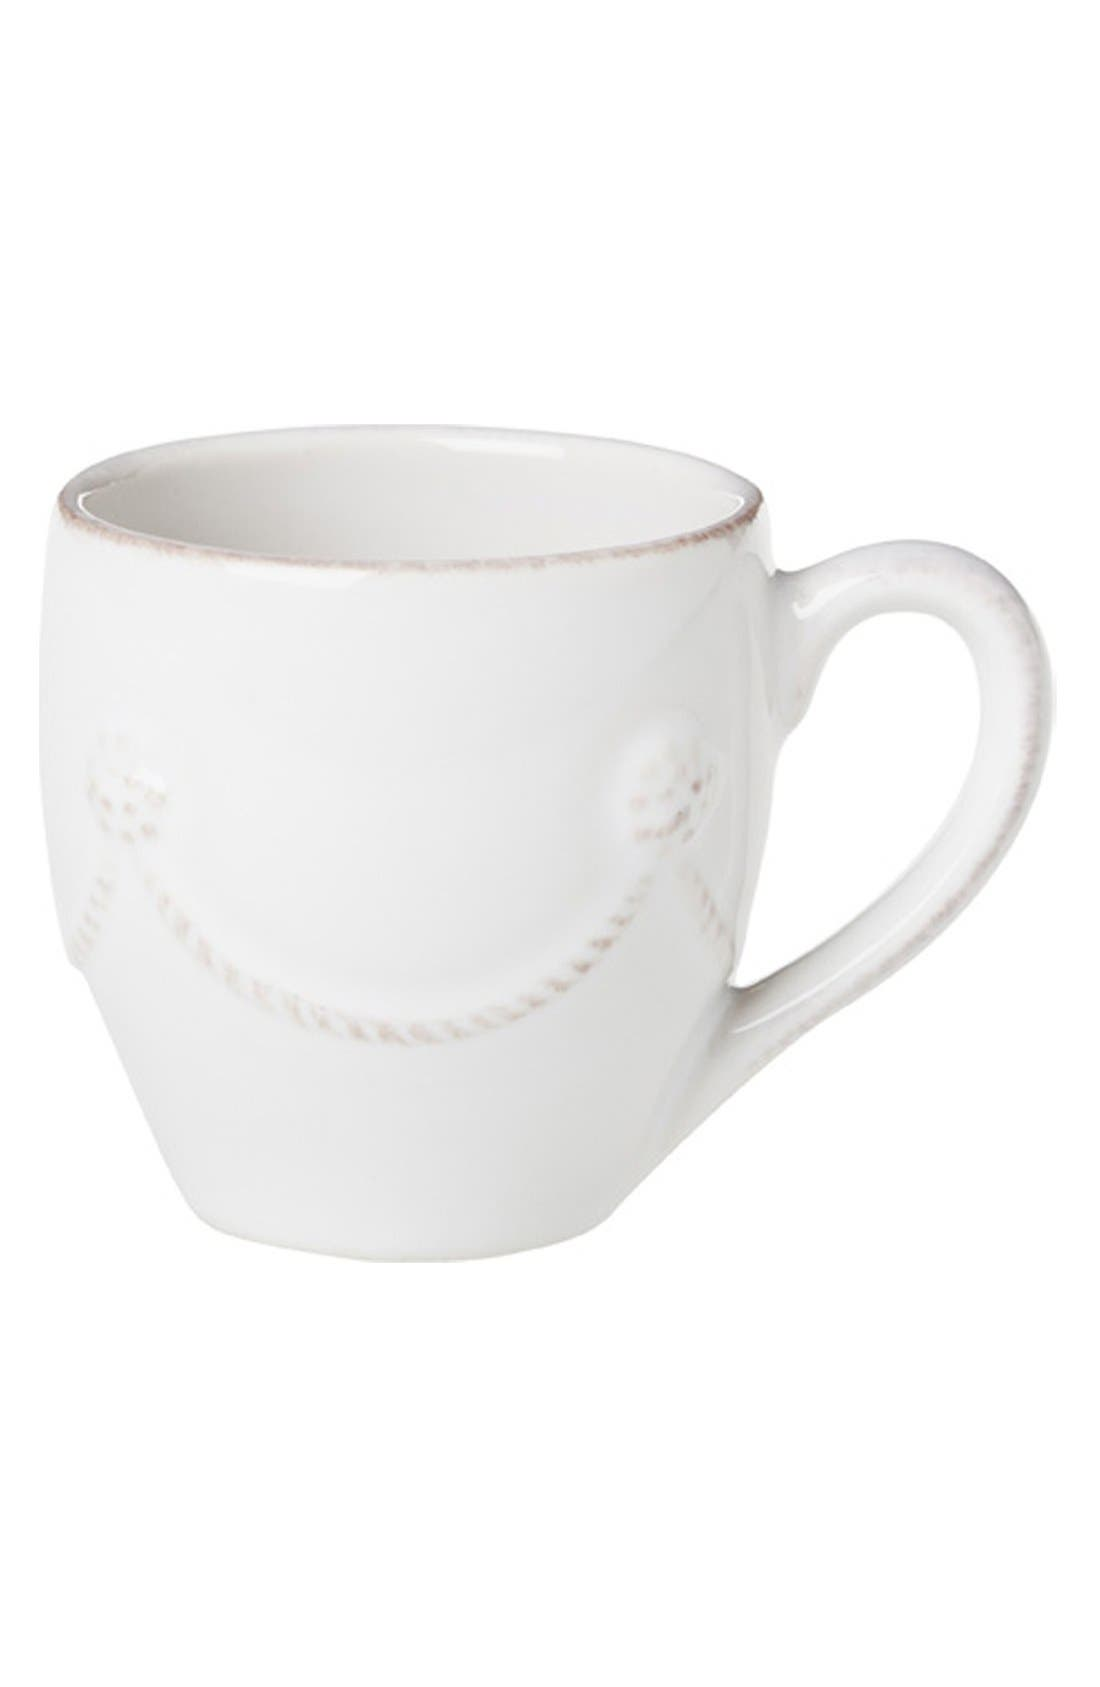 JULISKA 'Berry and Thread' Ceramic Demitasse Coffee Mug